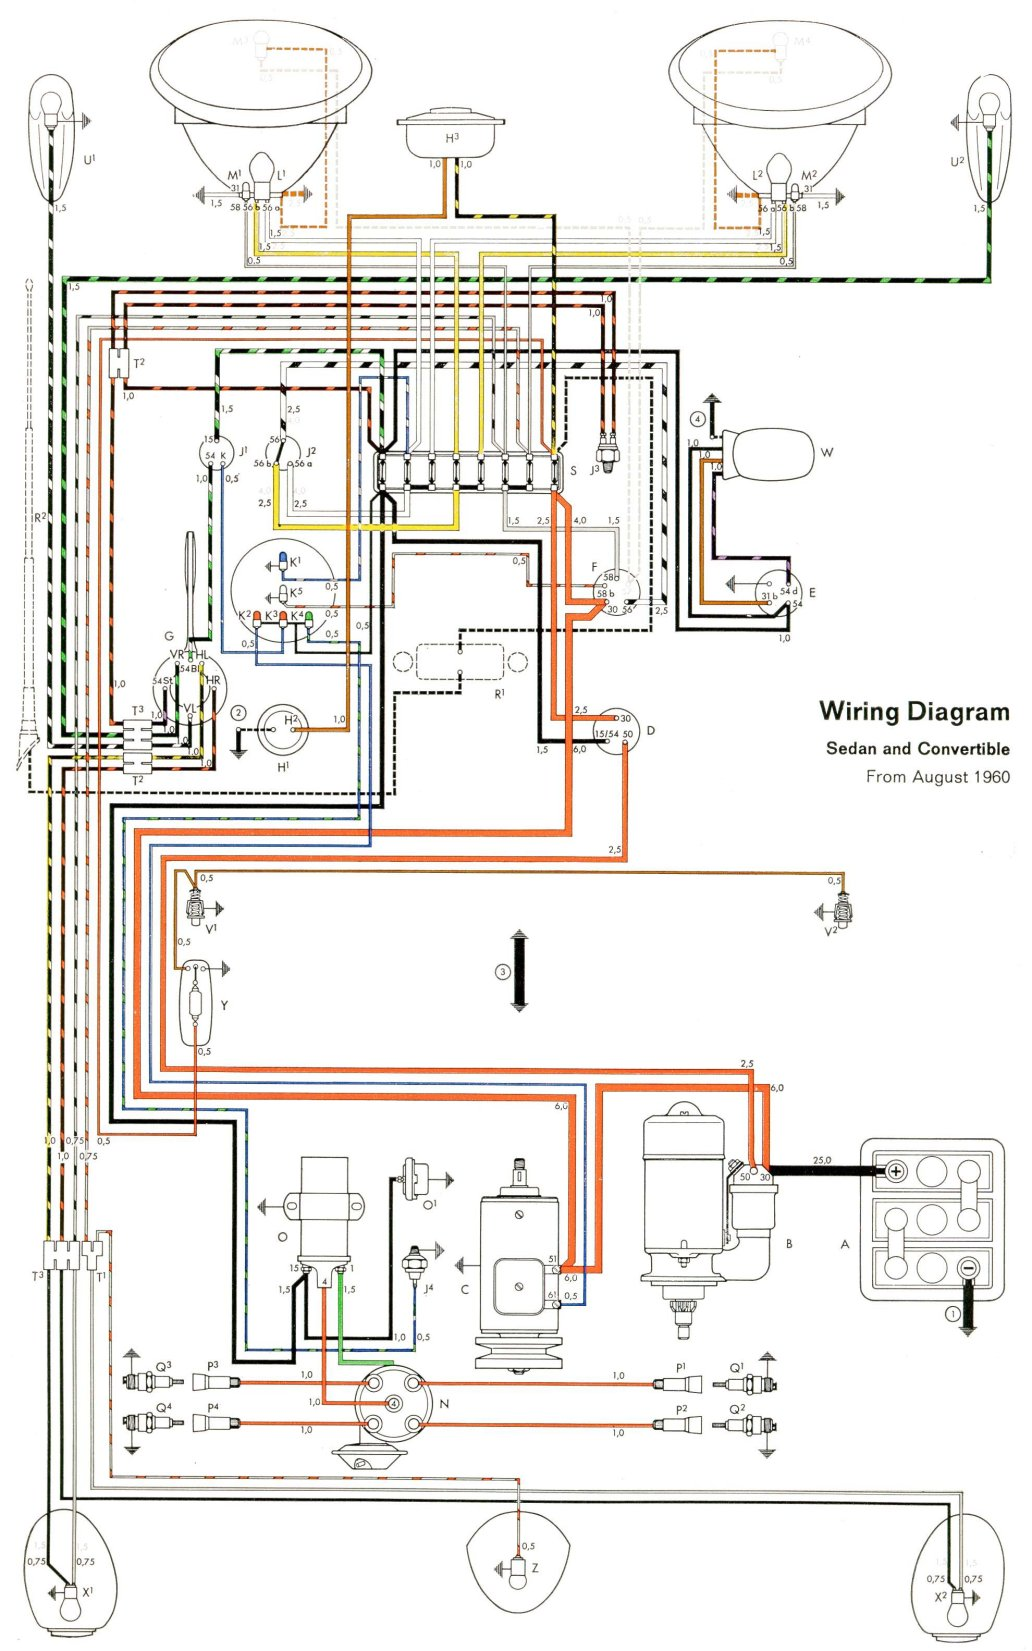 bug_61 thesamba com type 1 wiring diagrams vw beetle wiring diagram at couponss.co